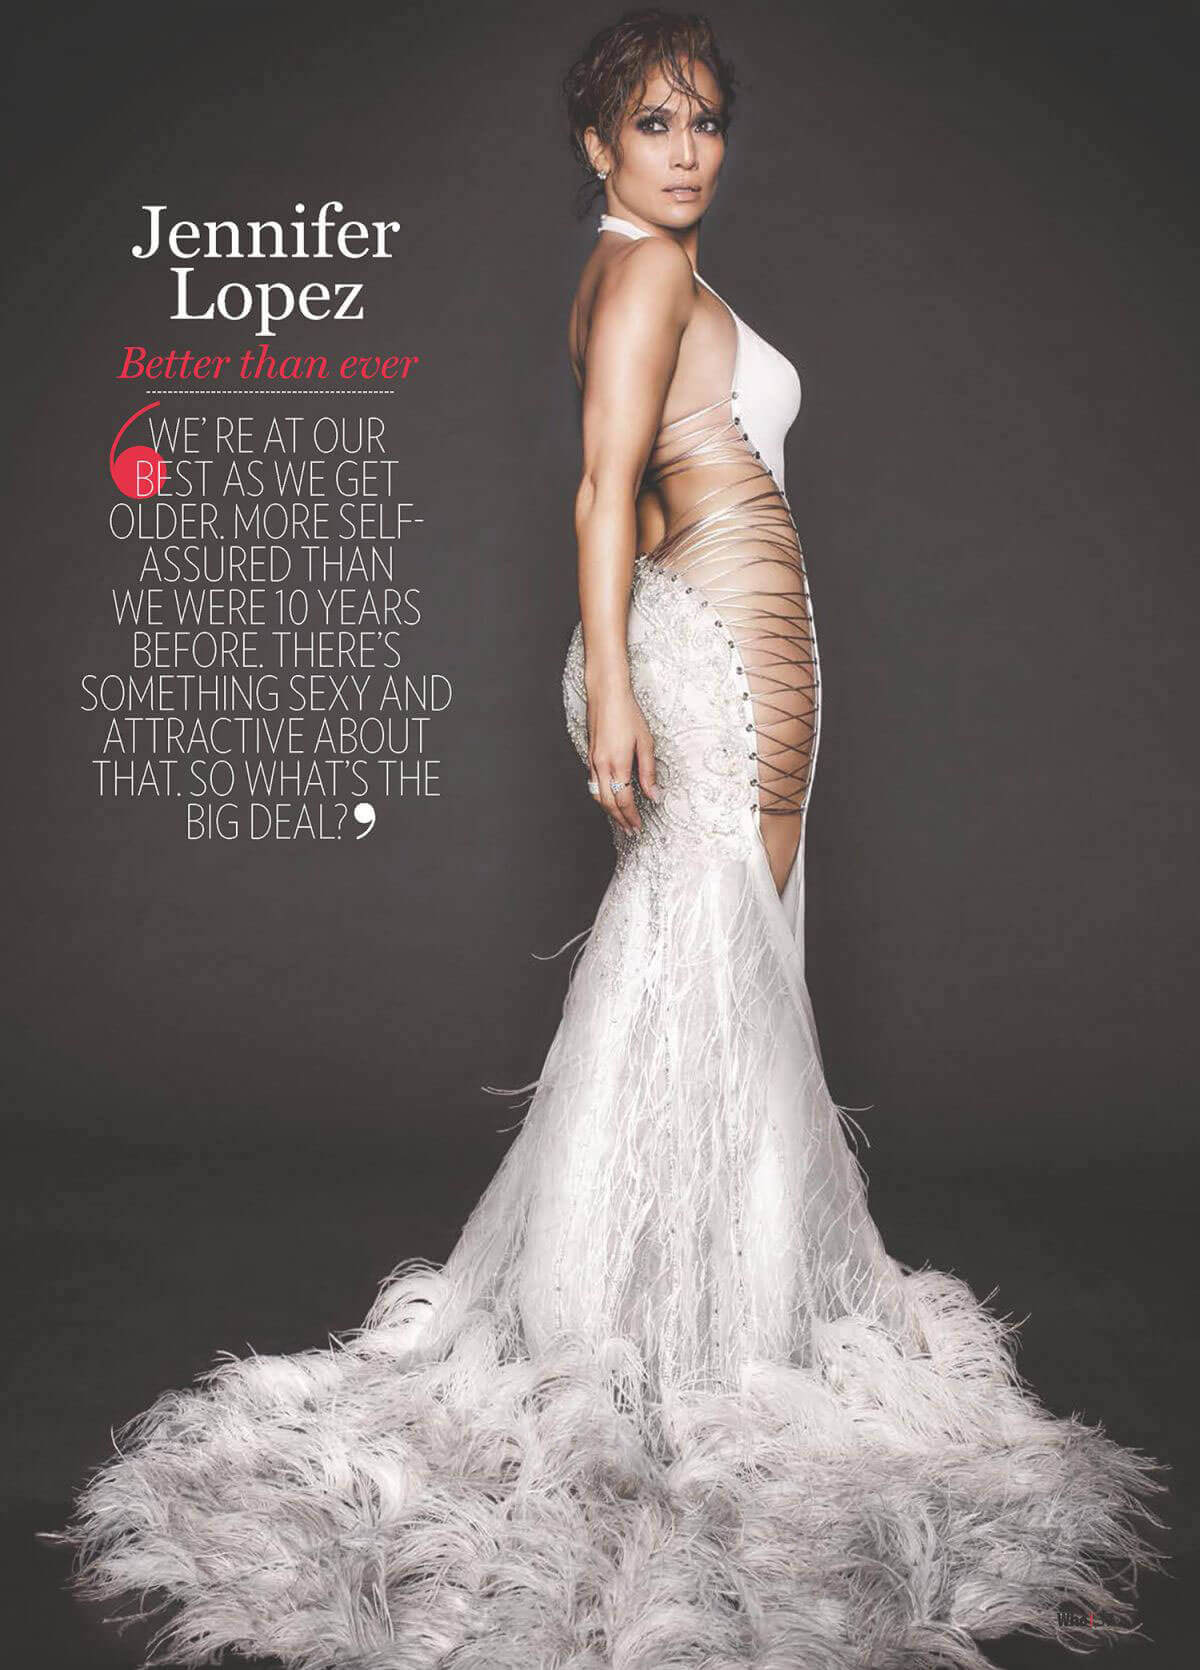 Jennifer Lopez Photos for Who Magazine, Glamour Issue 2017